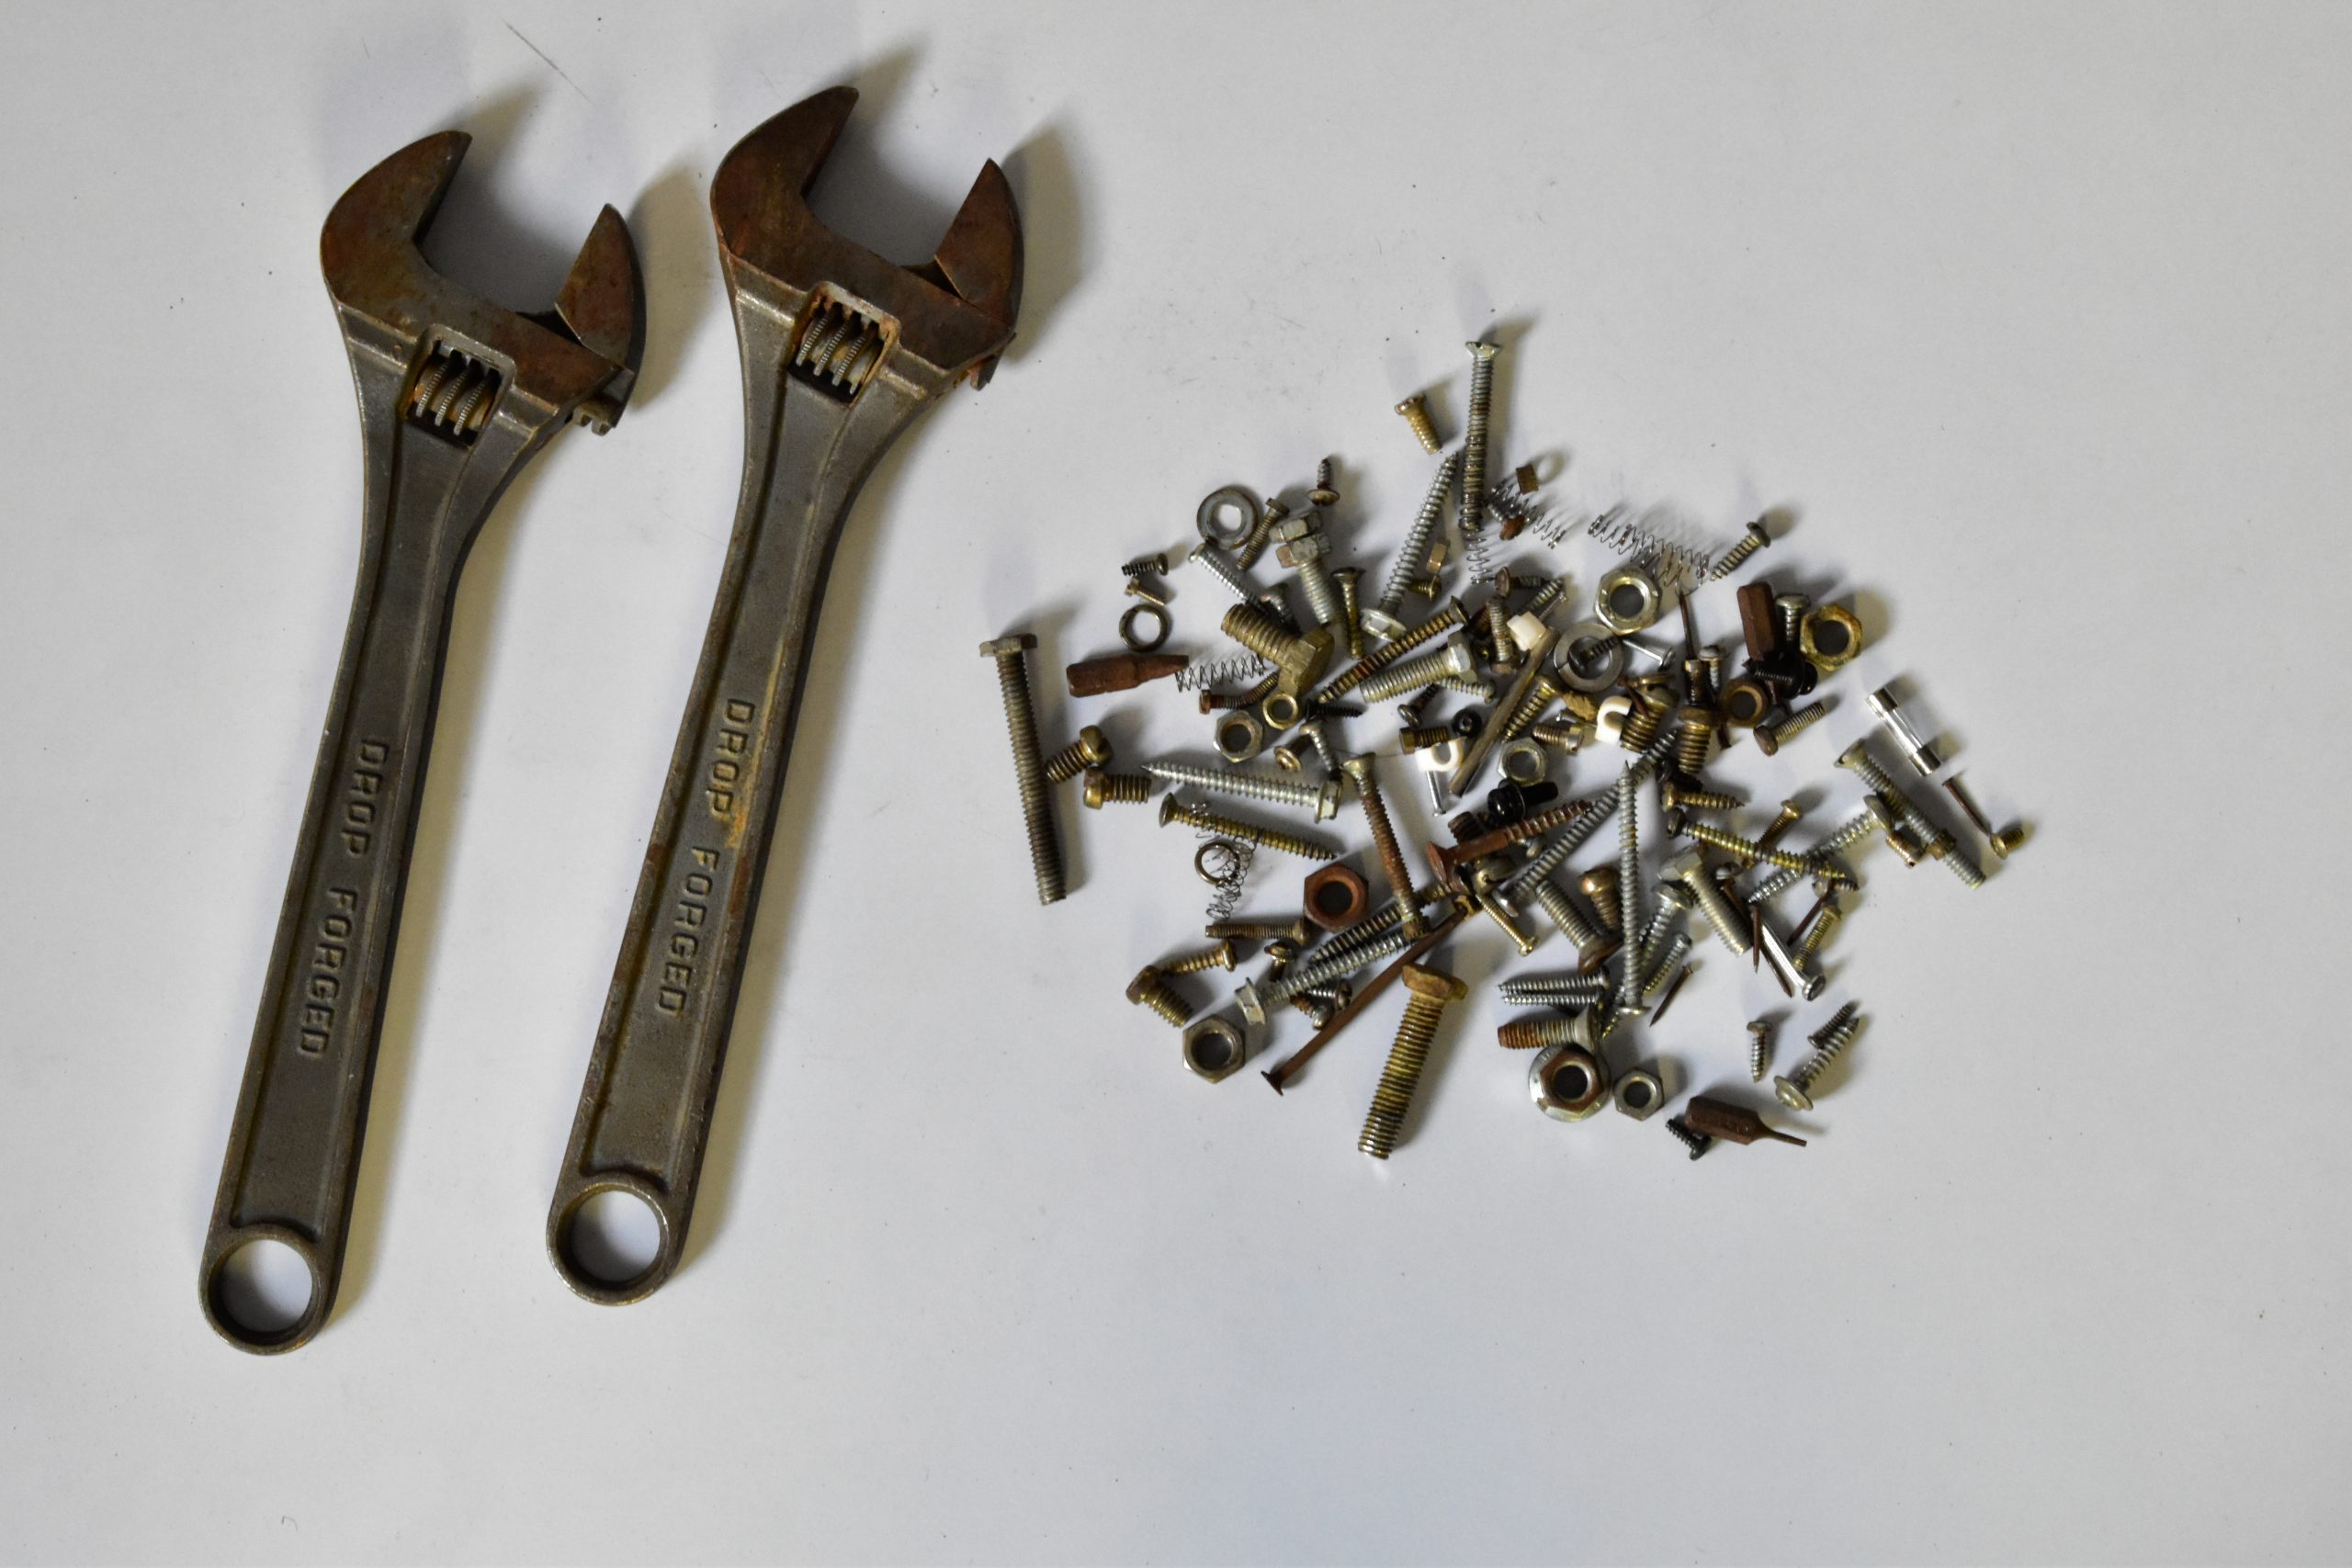 Wrench, nuts and screws